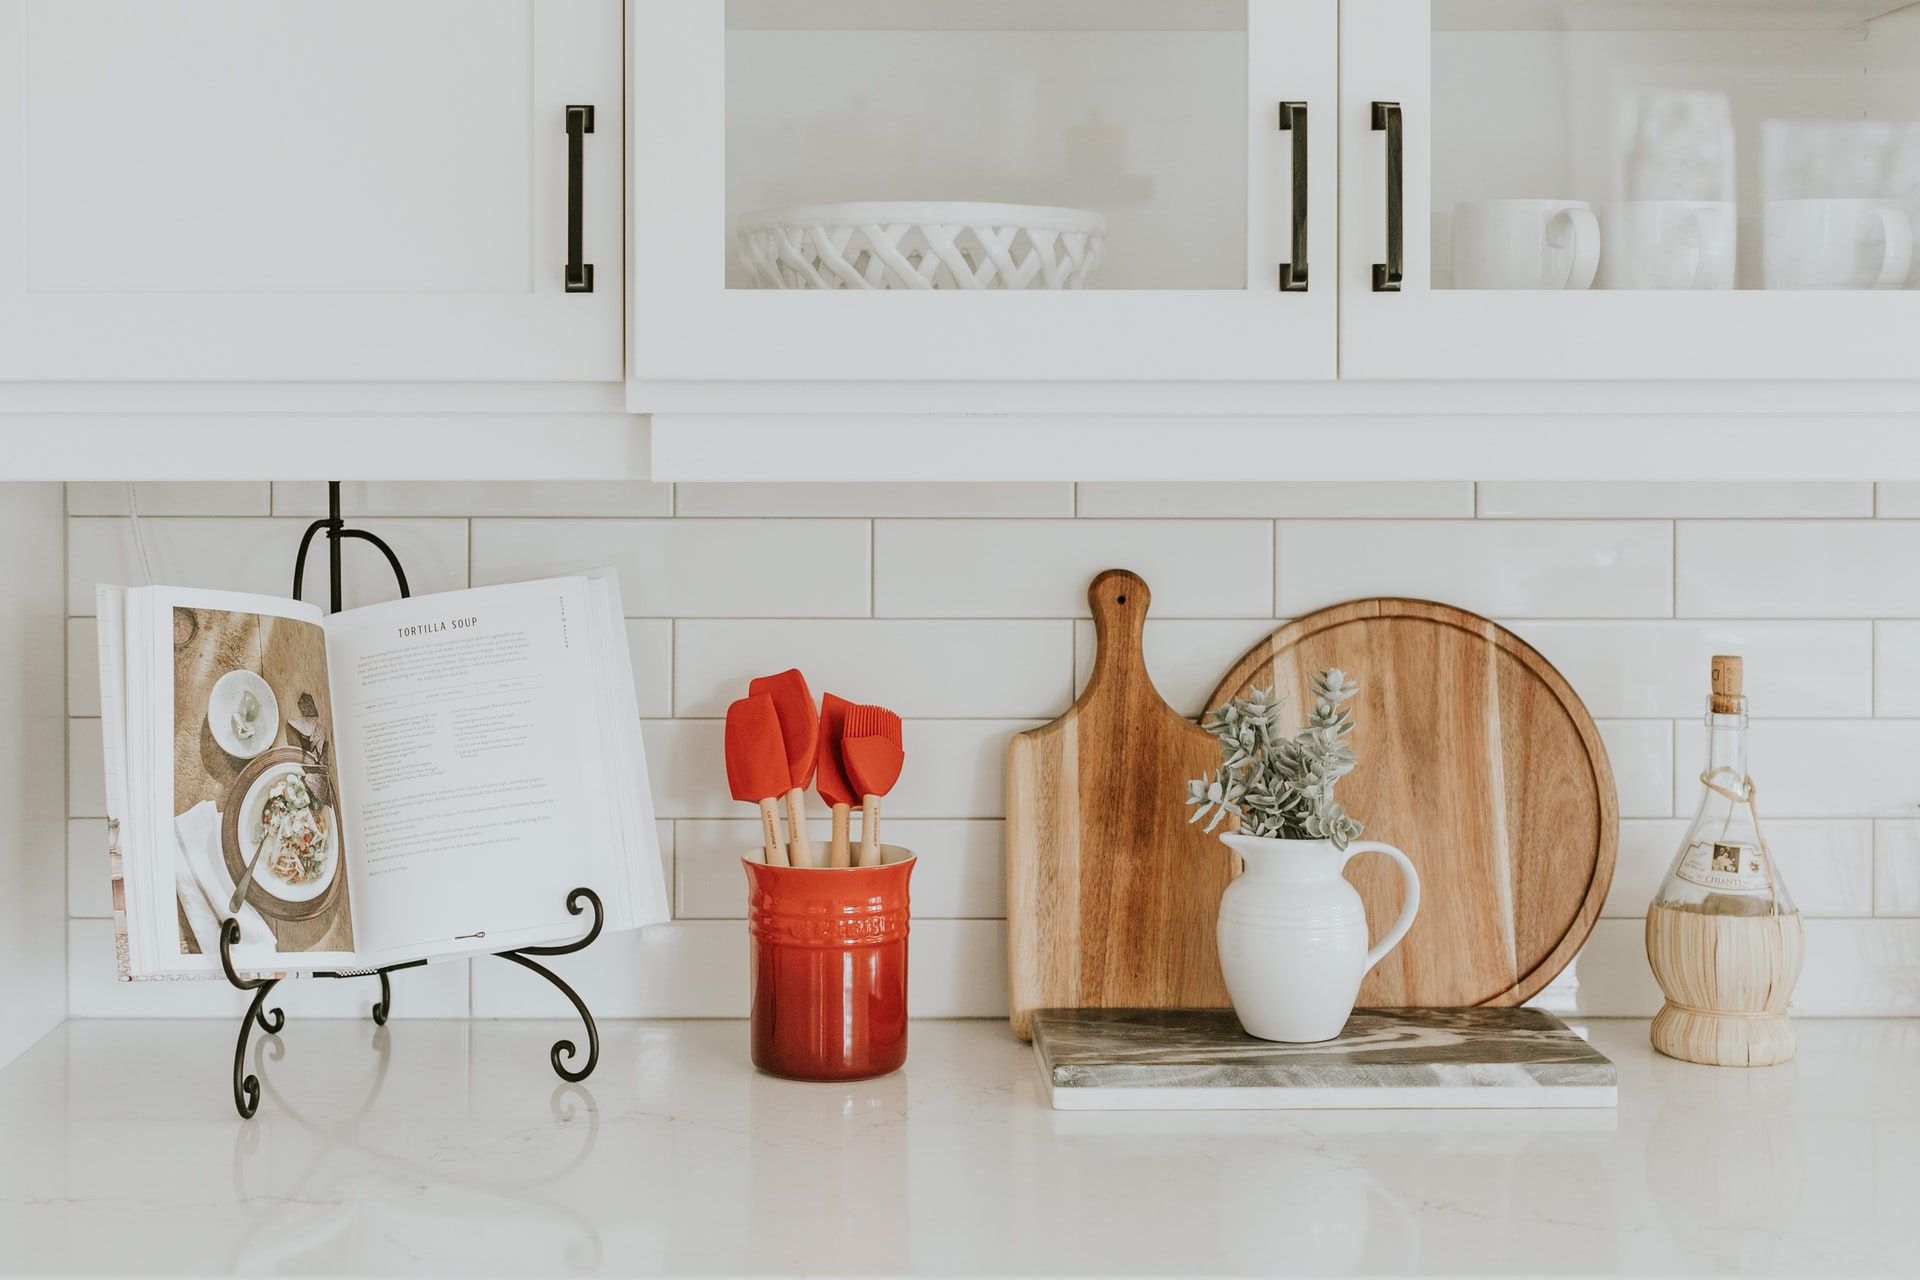 Kitchen counter with cookbook and kitchen accessories